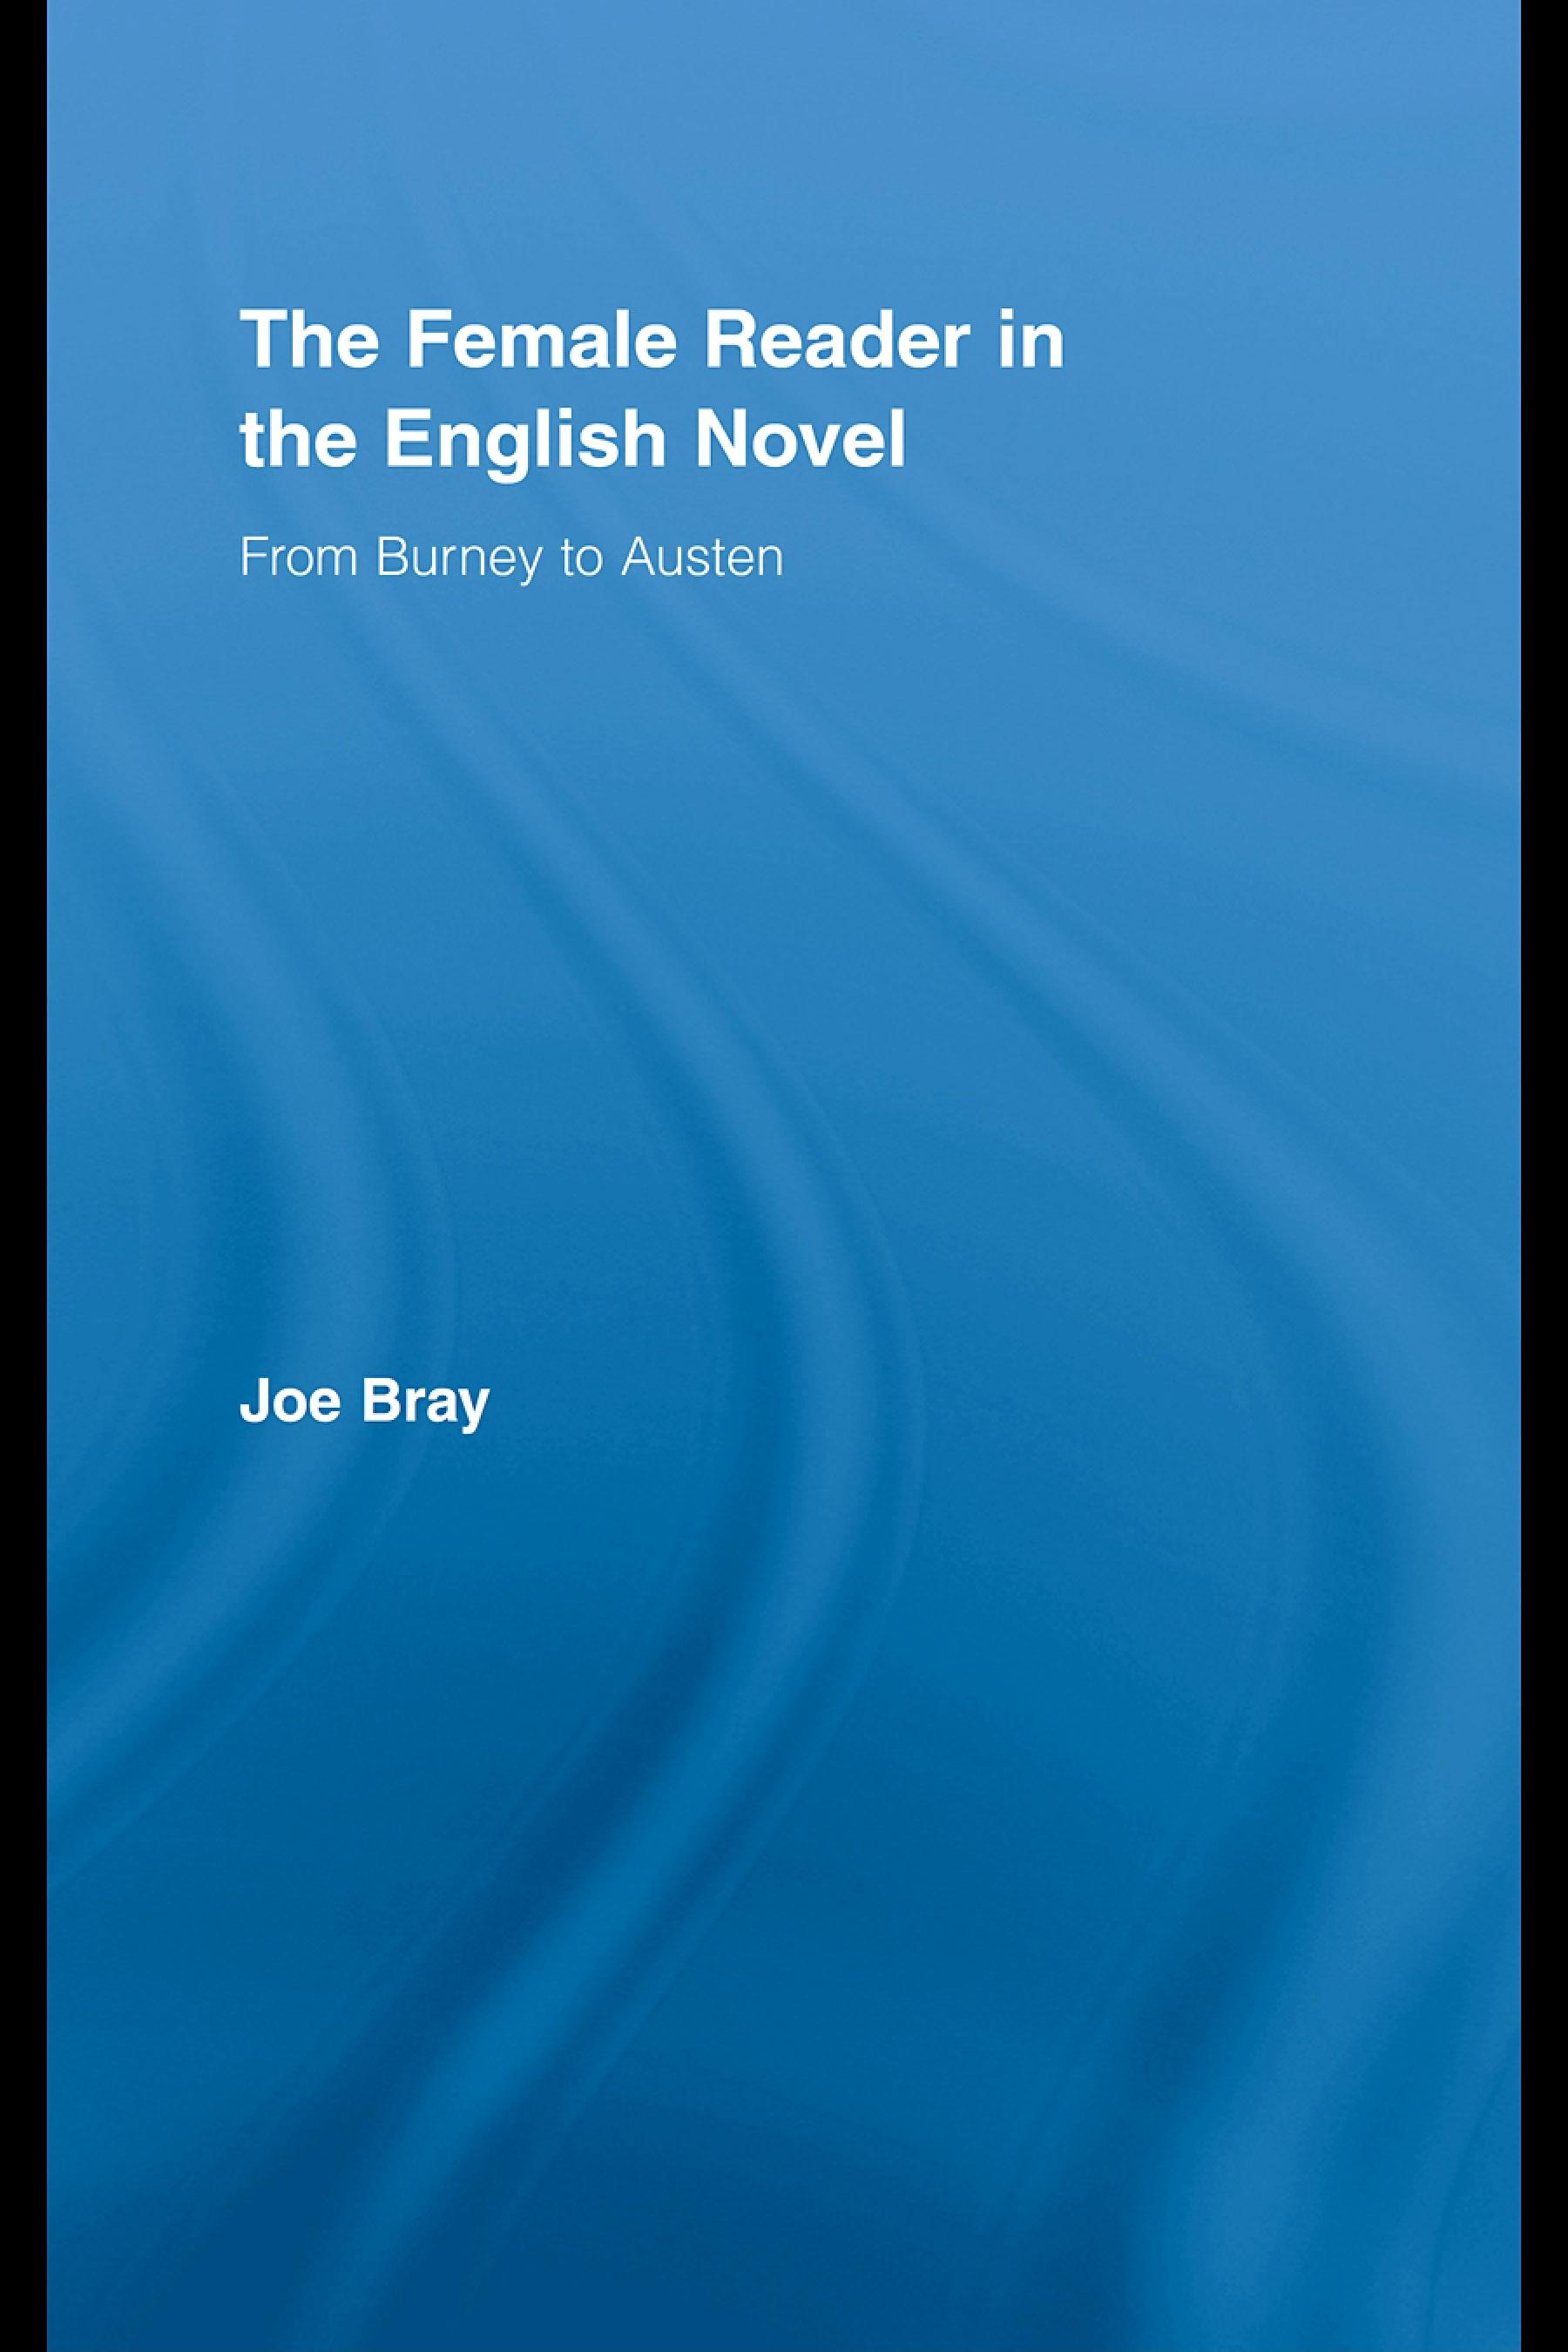 The Female Reader in the English Novel: From Burney to Austen